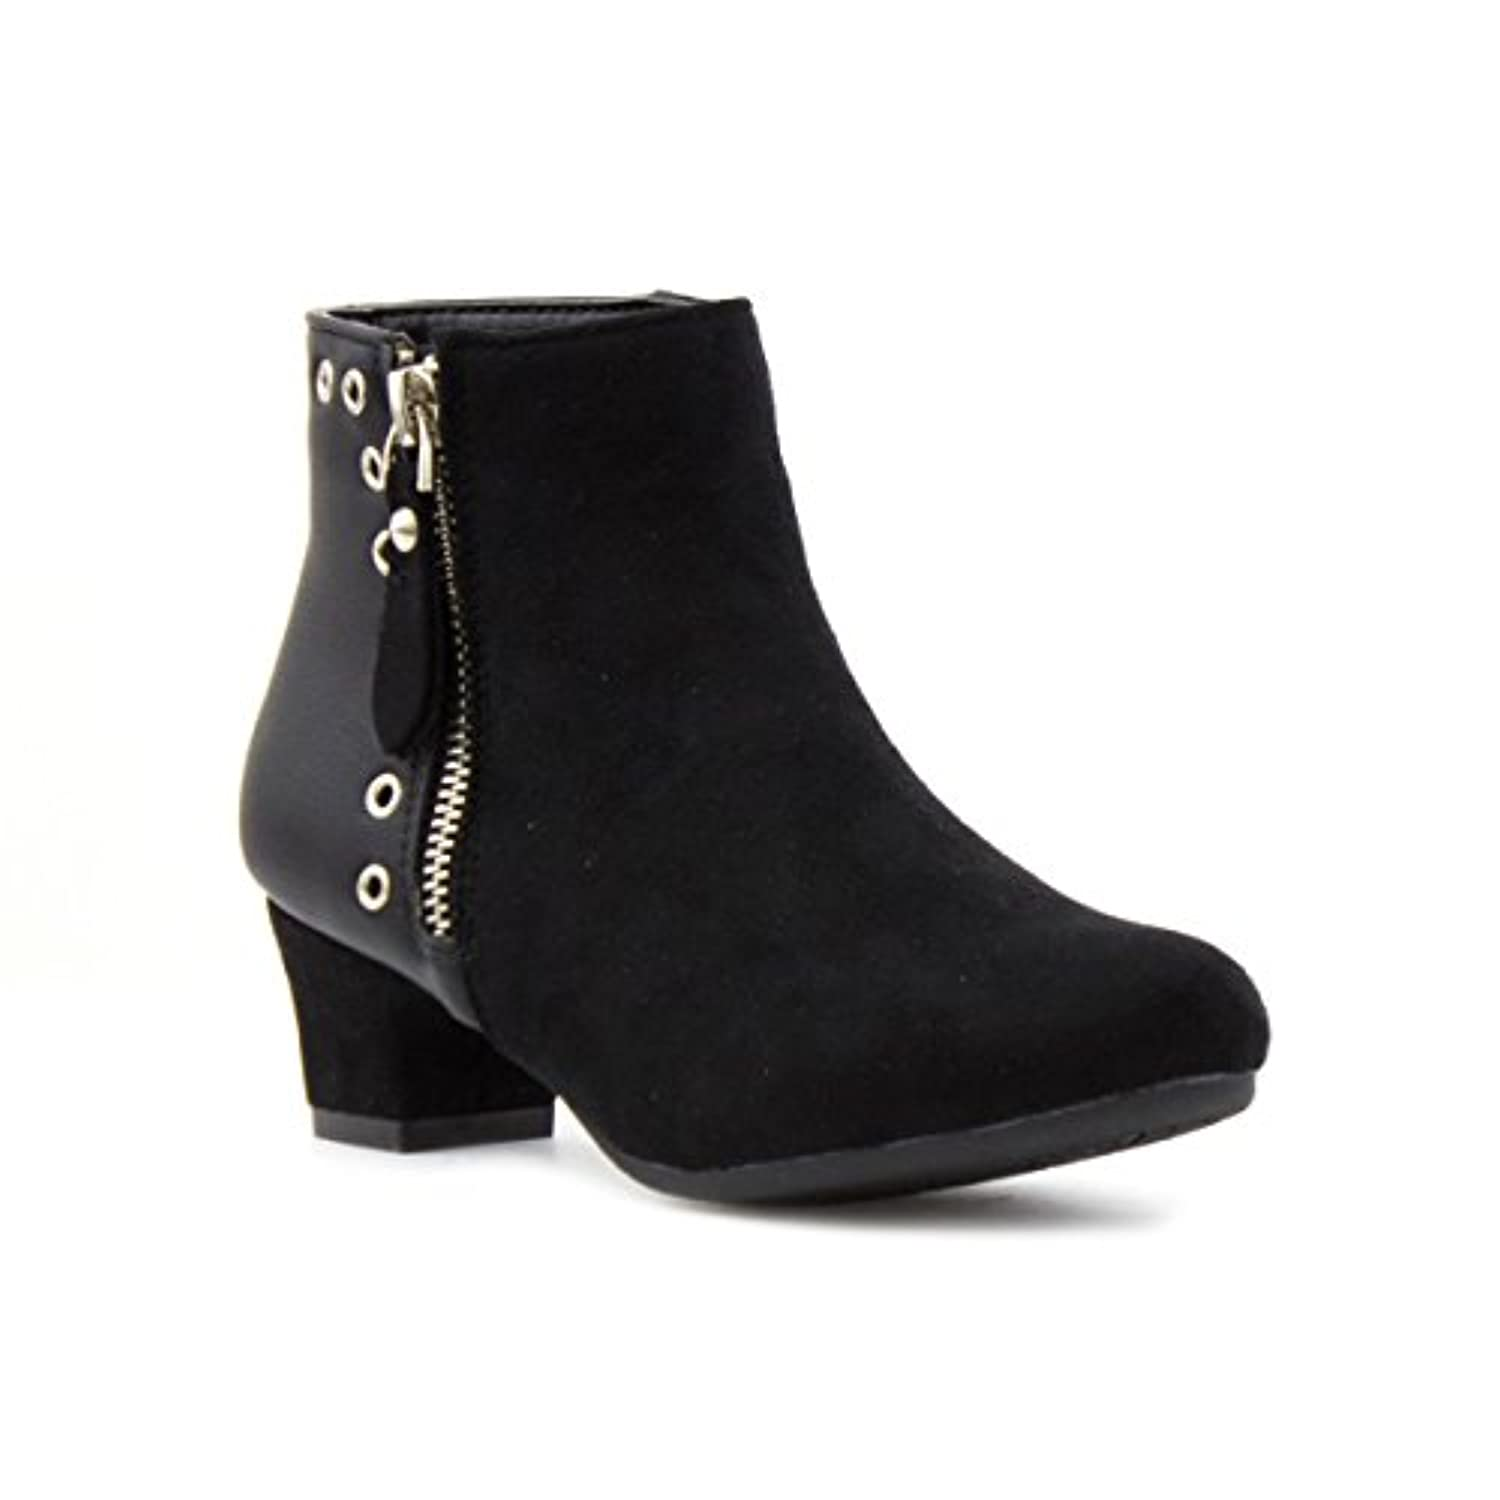 Lilley Girls Heeled Ankle Boot in Black - Size 1 - Black